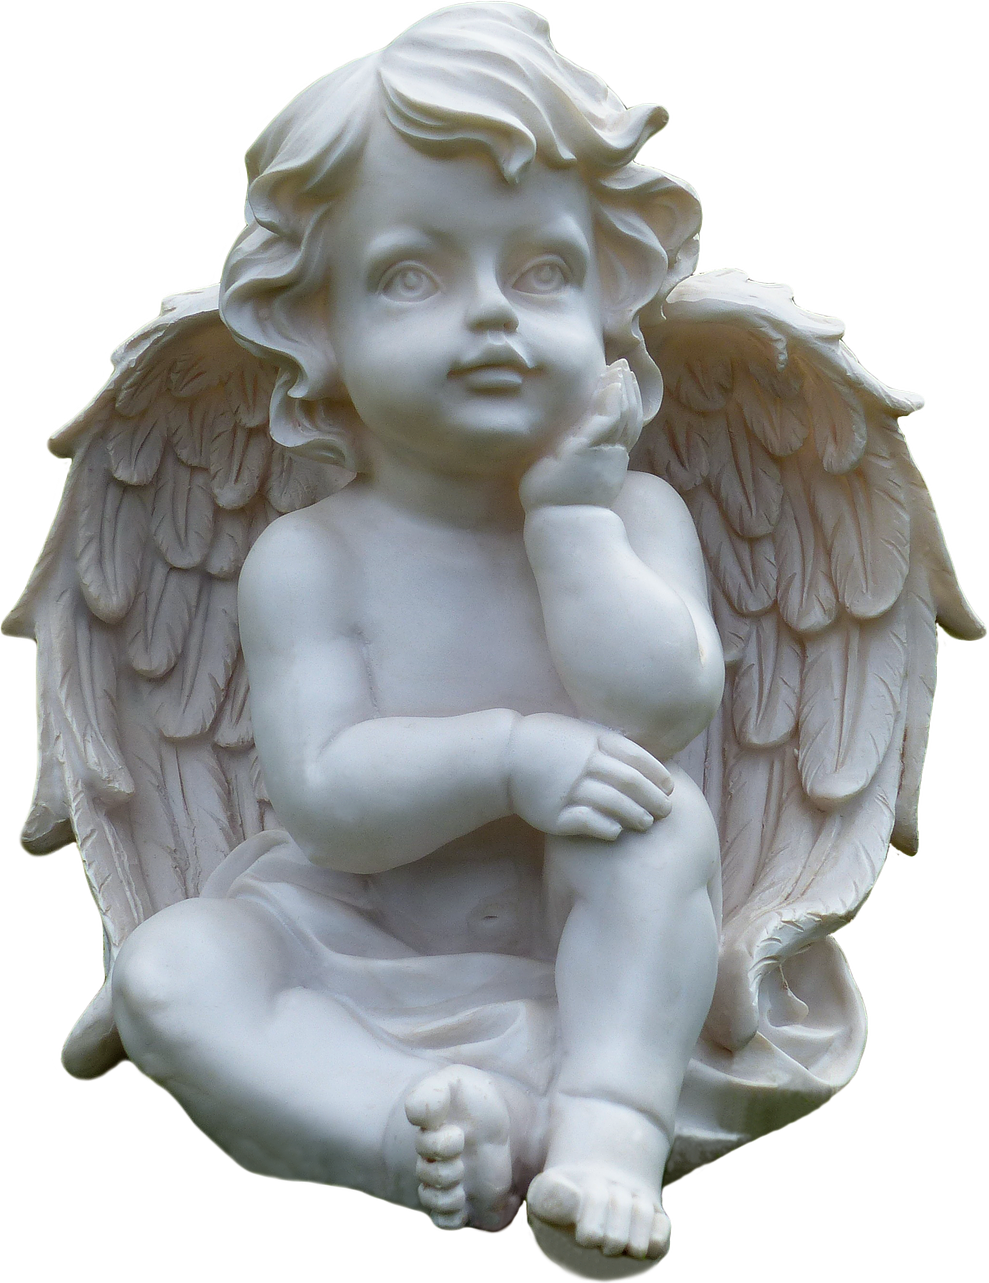 Thinking statue png. Cupid transparent image mix